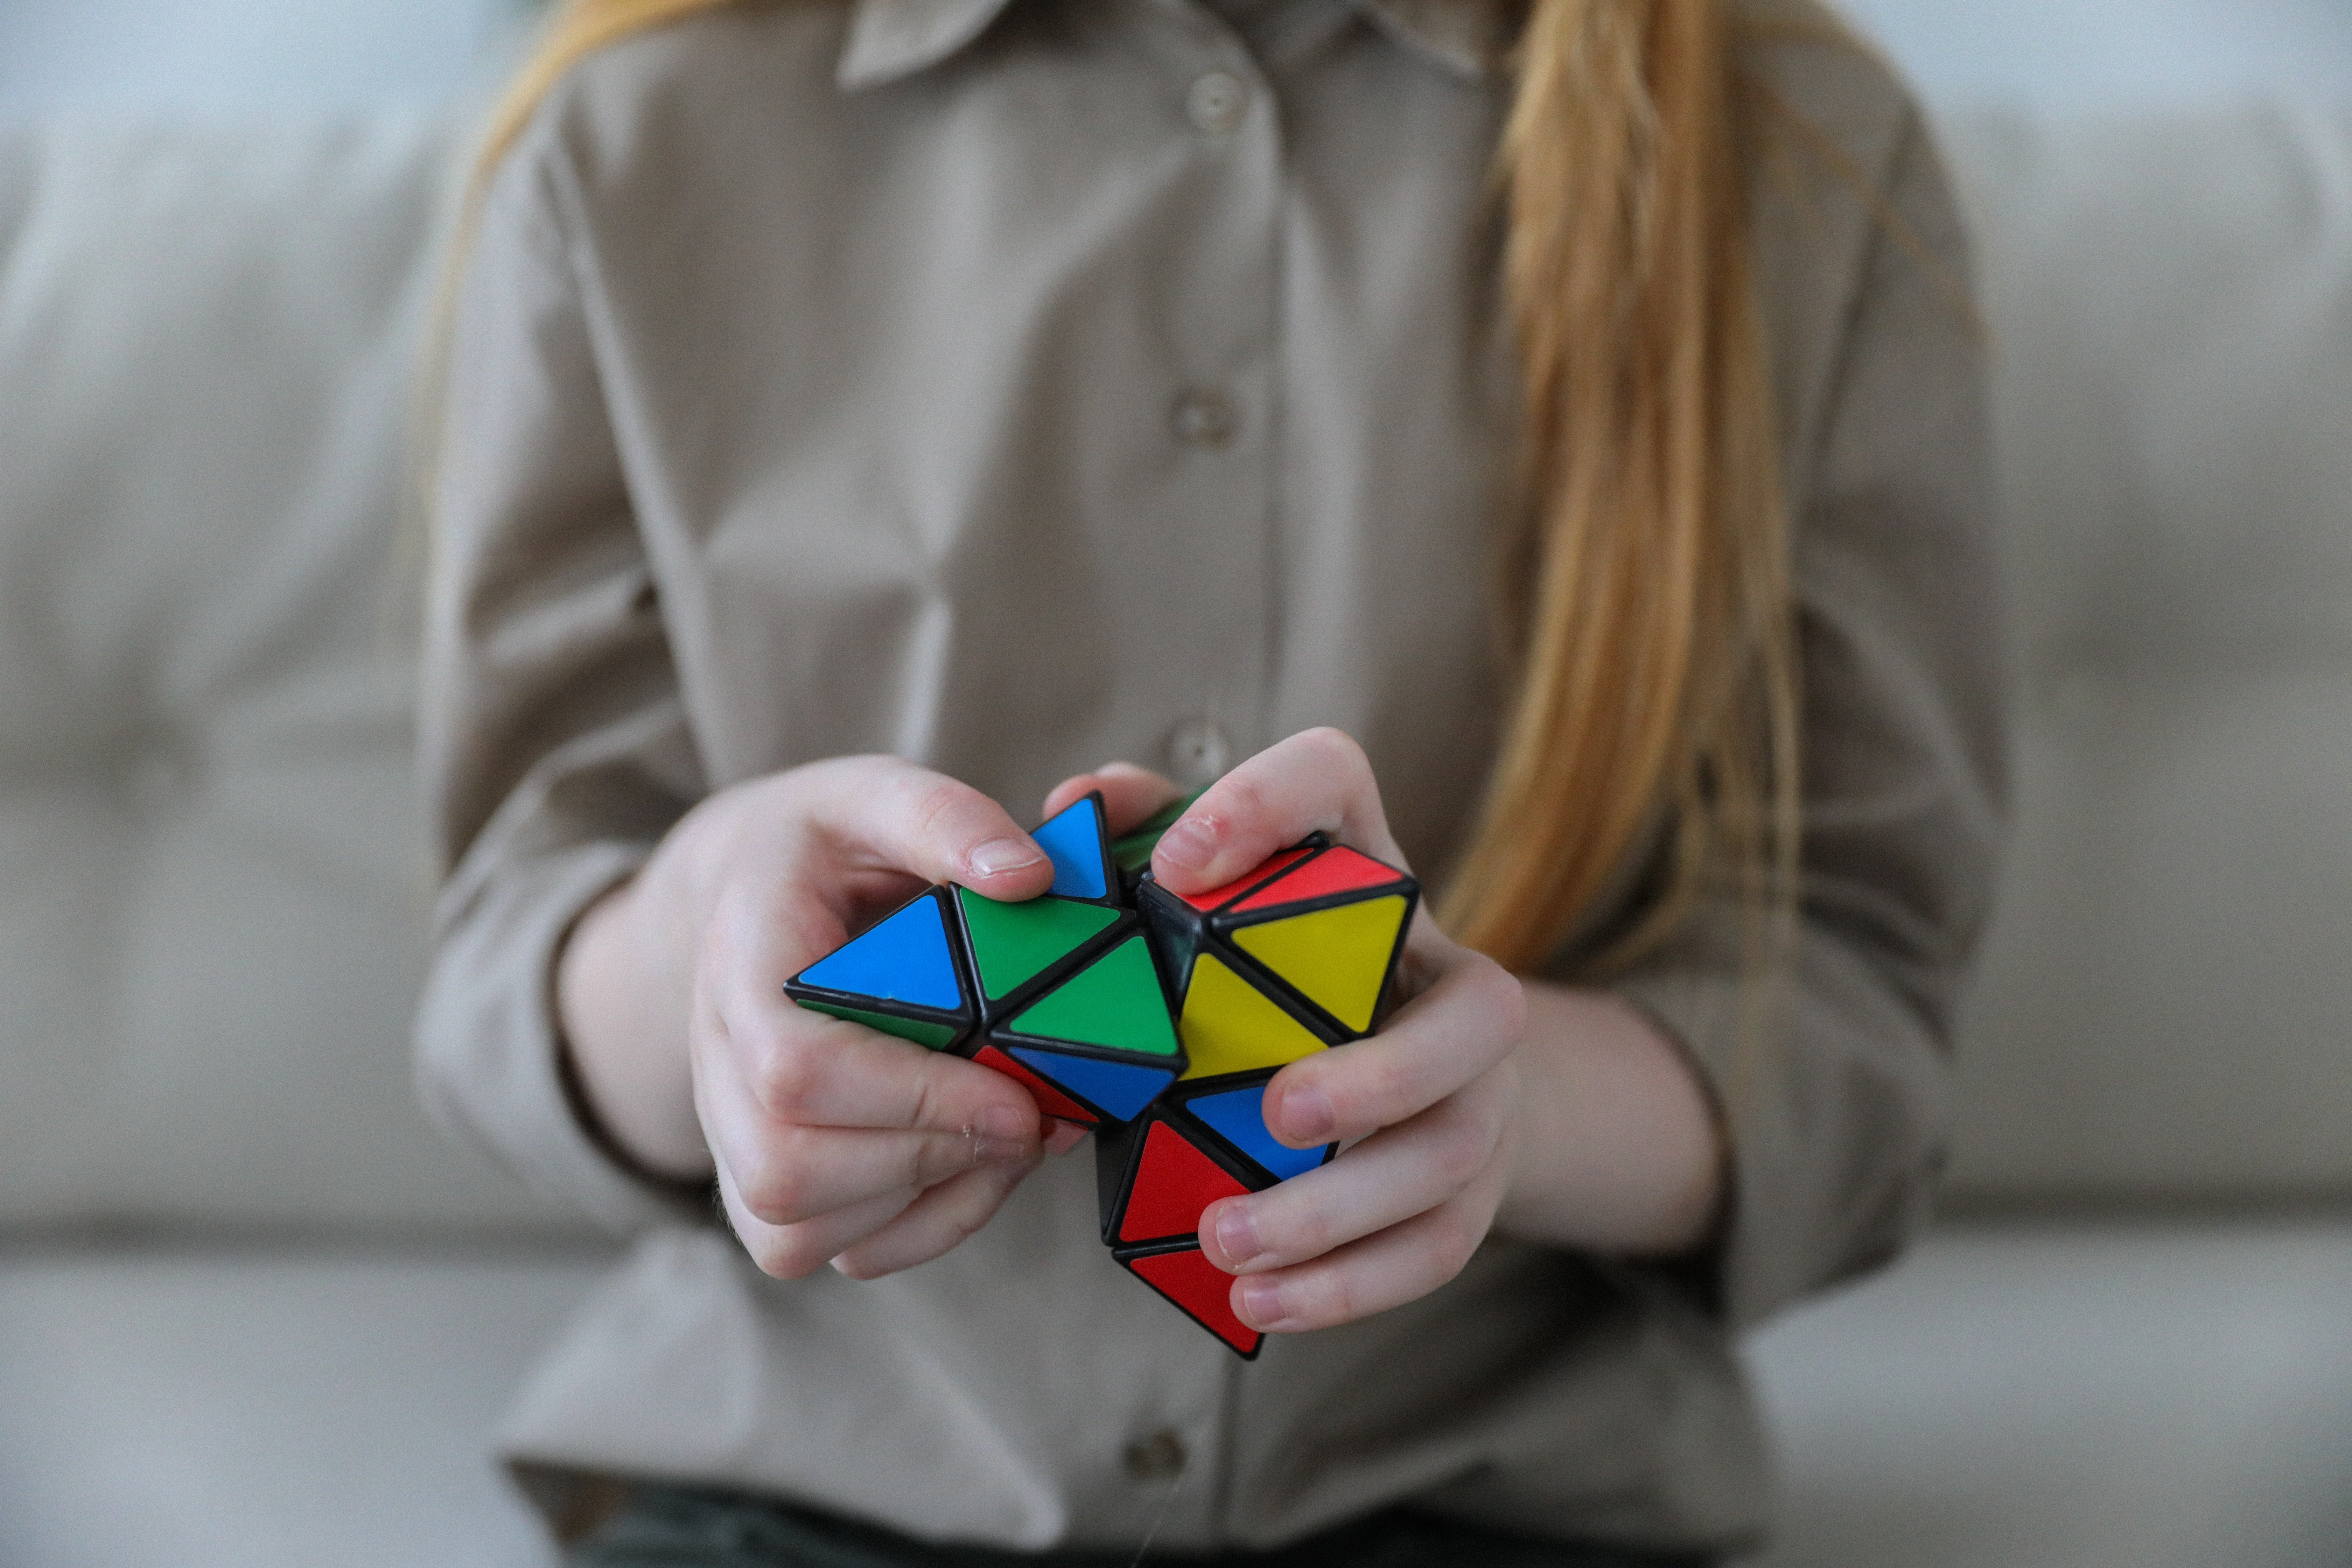 A girl holds a Rubix cube in her hands and it attempting to crack the code   Photo: Pexels/Monstera